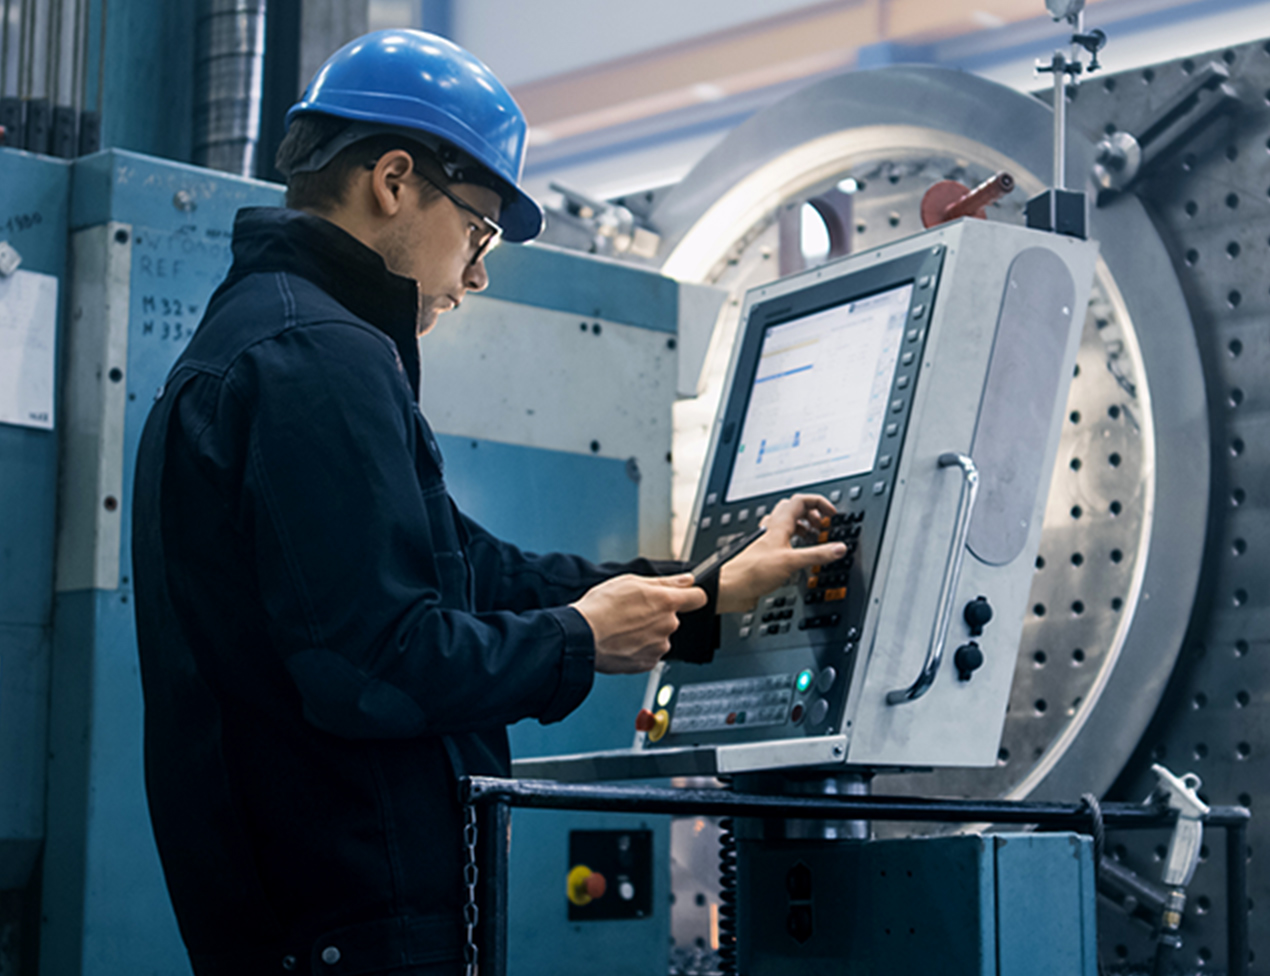 Closing the Industry 4.0 Gap with your bill of materials